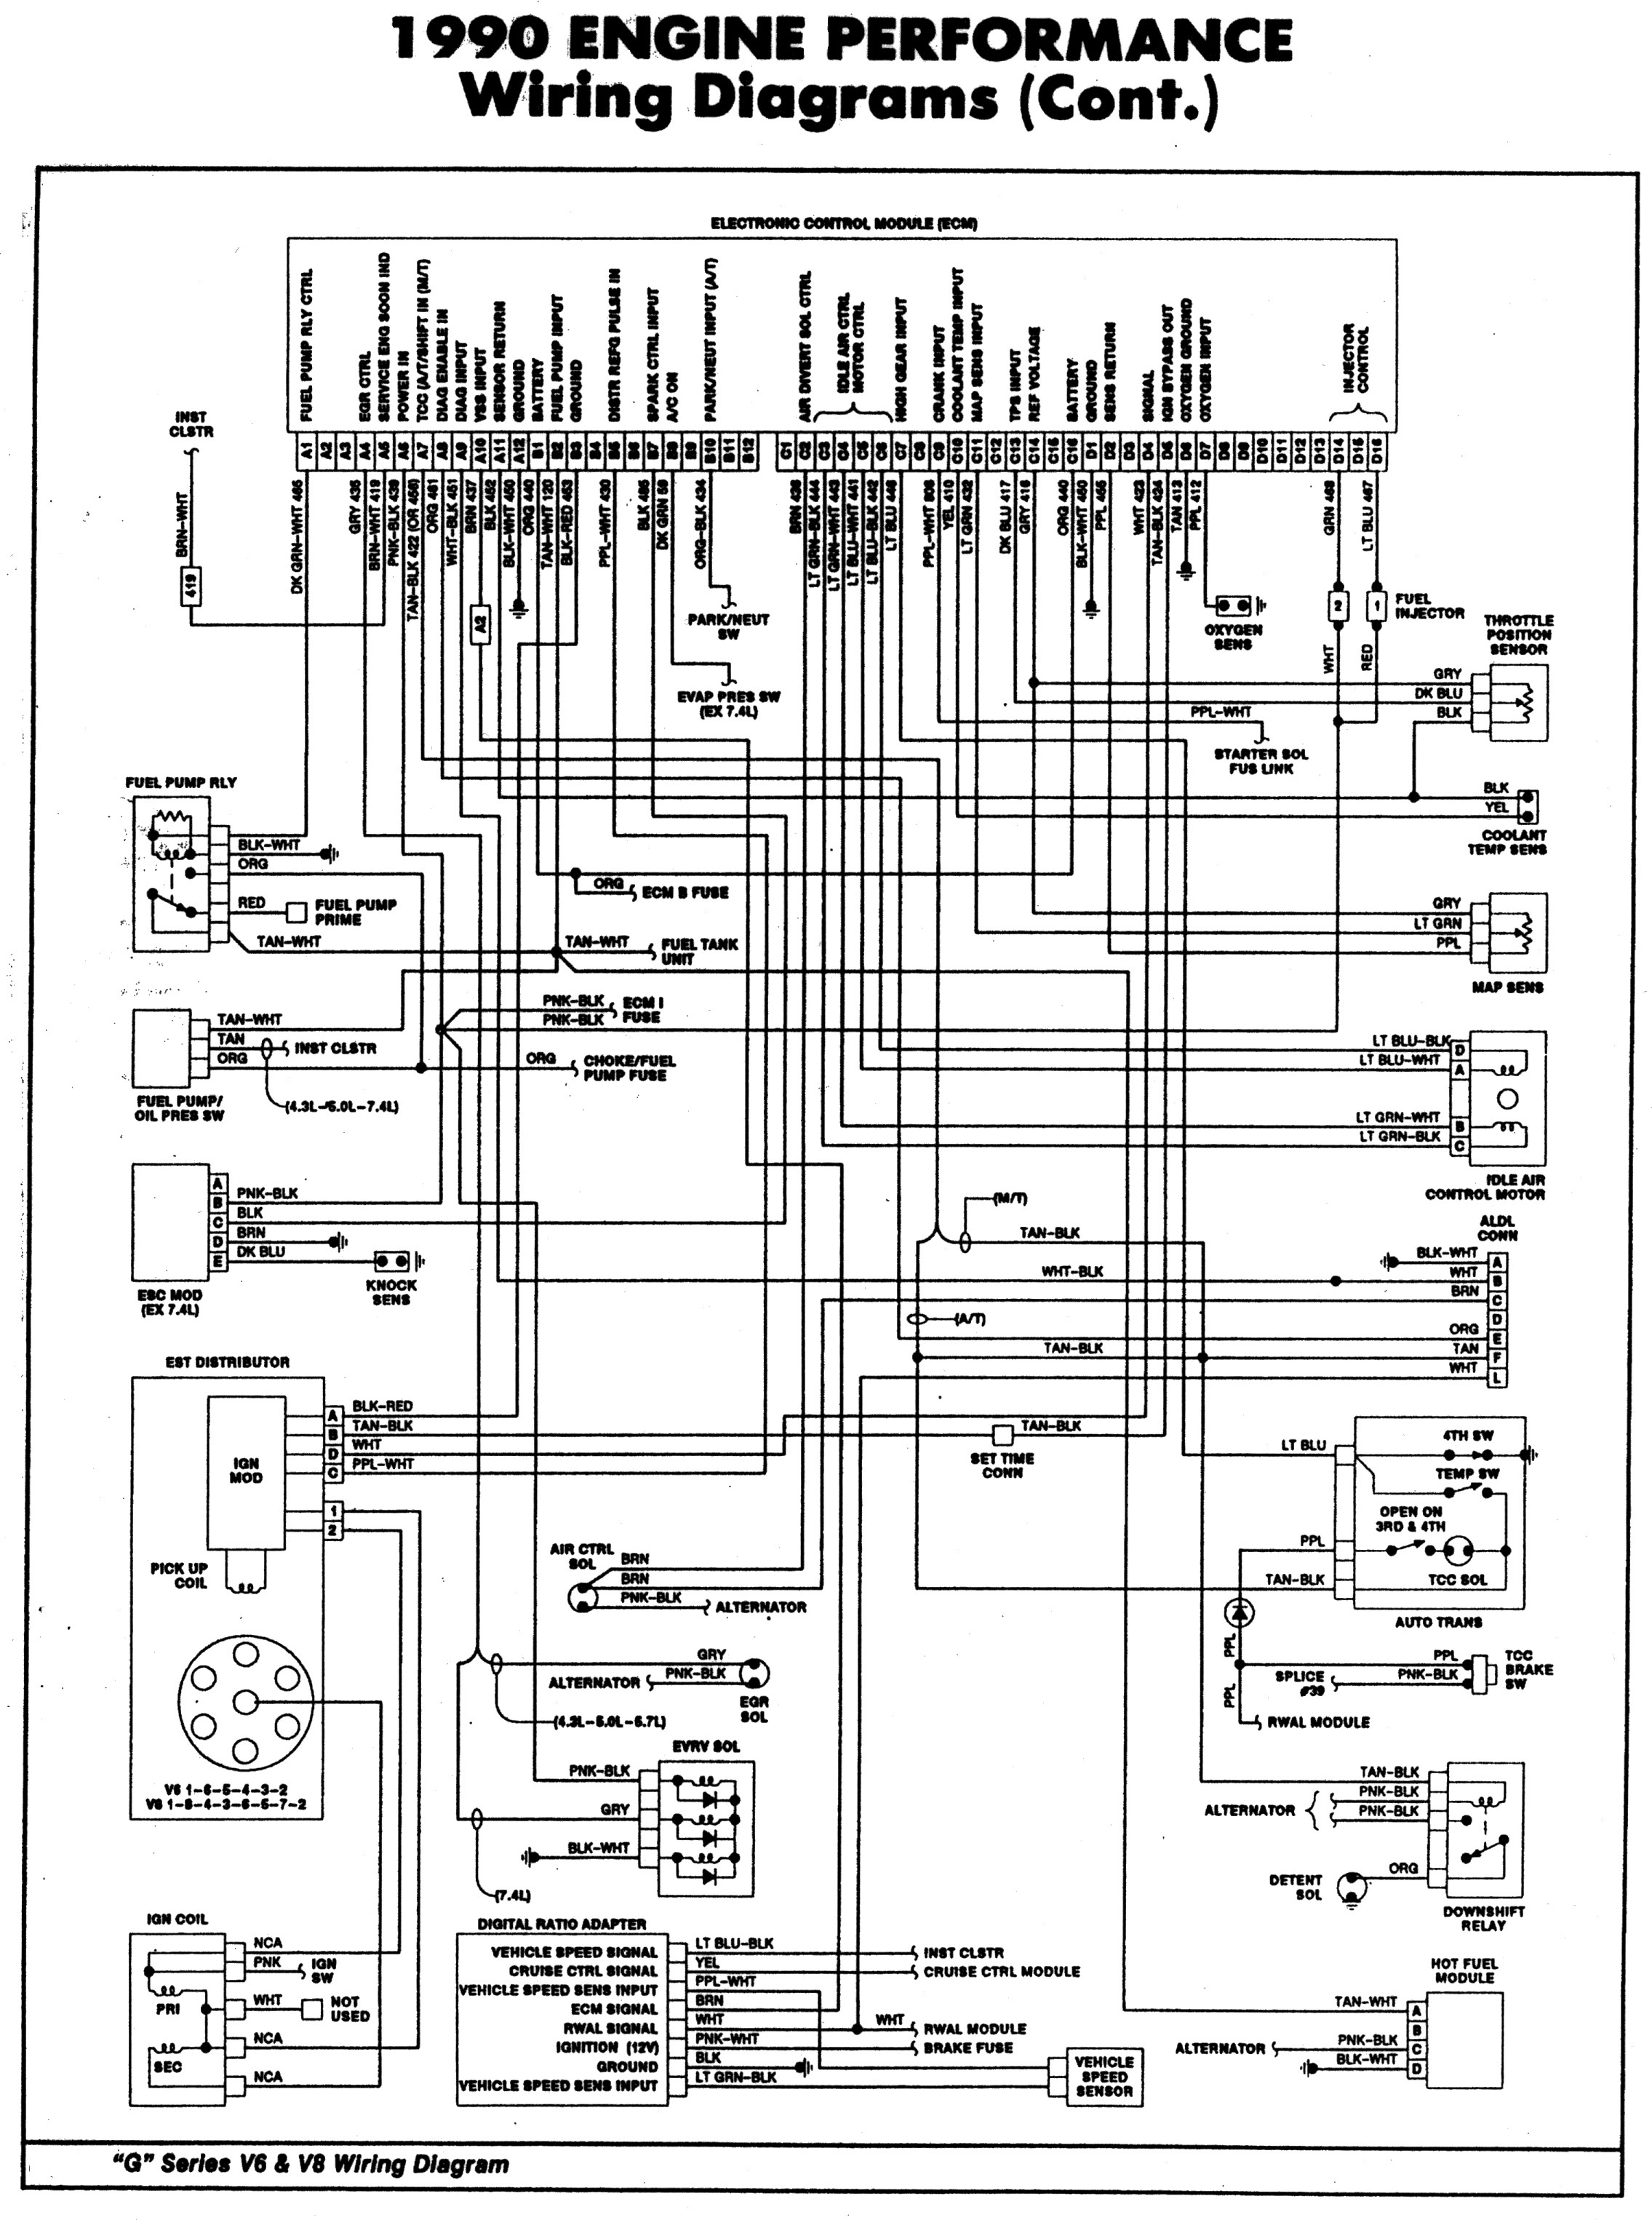 v8 engine wiring diagram full wiring diagram centre chevy v 8 engine exploded view diagram wiring [ 2271 x 3051 Pixel ]